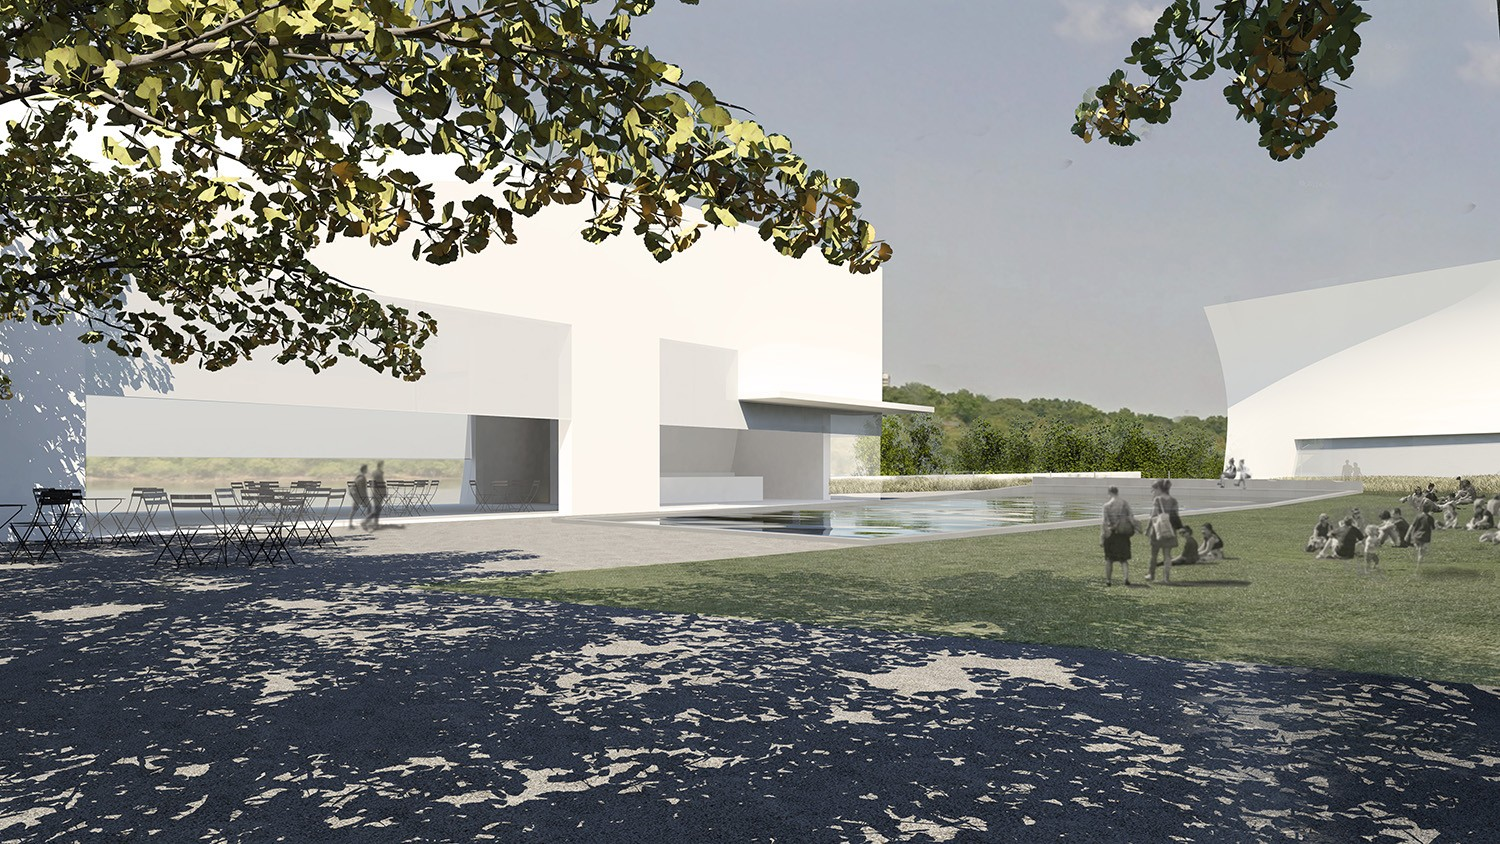 https://s3.us-east-2.amazonaws.com/steven-holl/uploads/projects/project-images/StevenHollArchitects_JFK_ViewfromGinkgos_WH.jpg